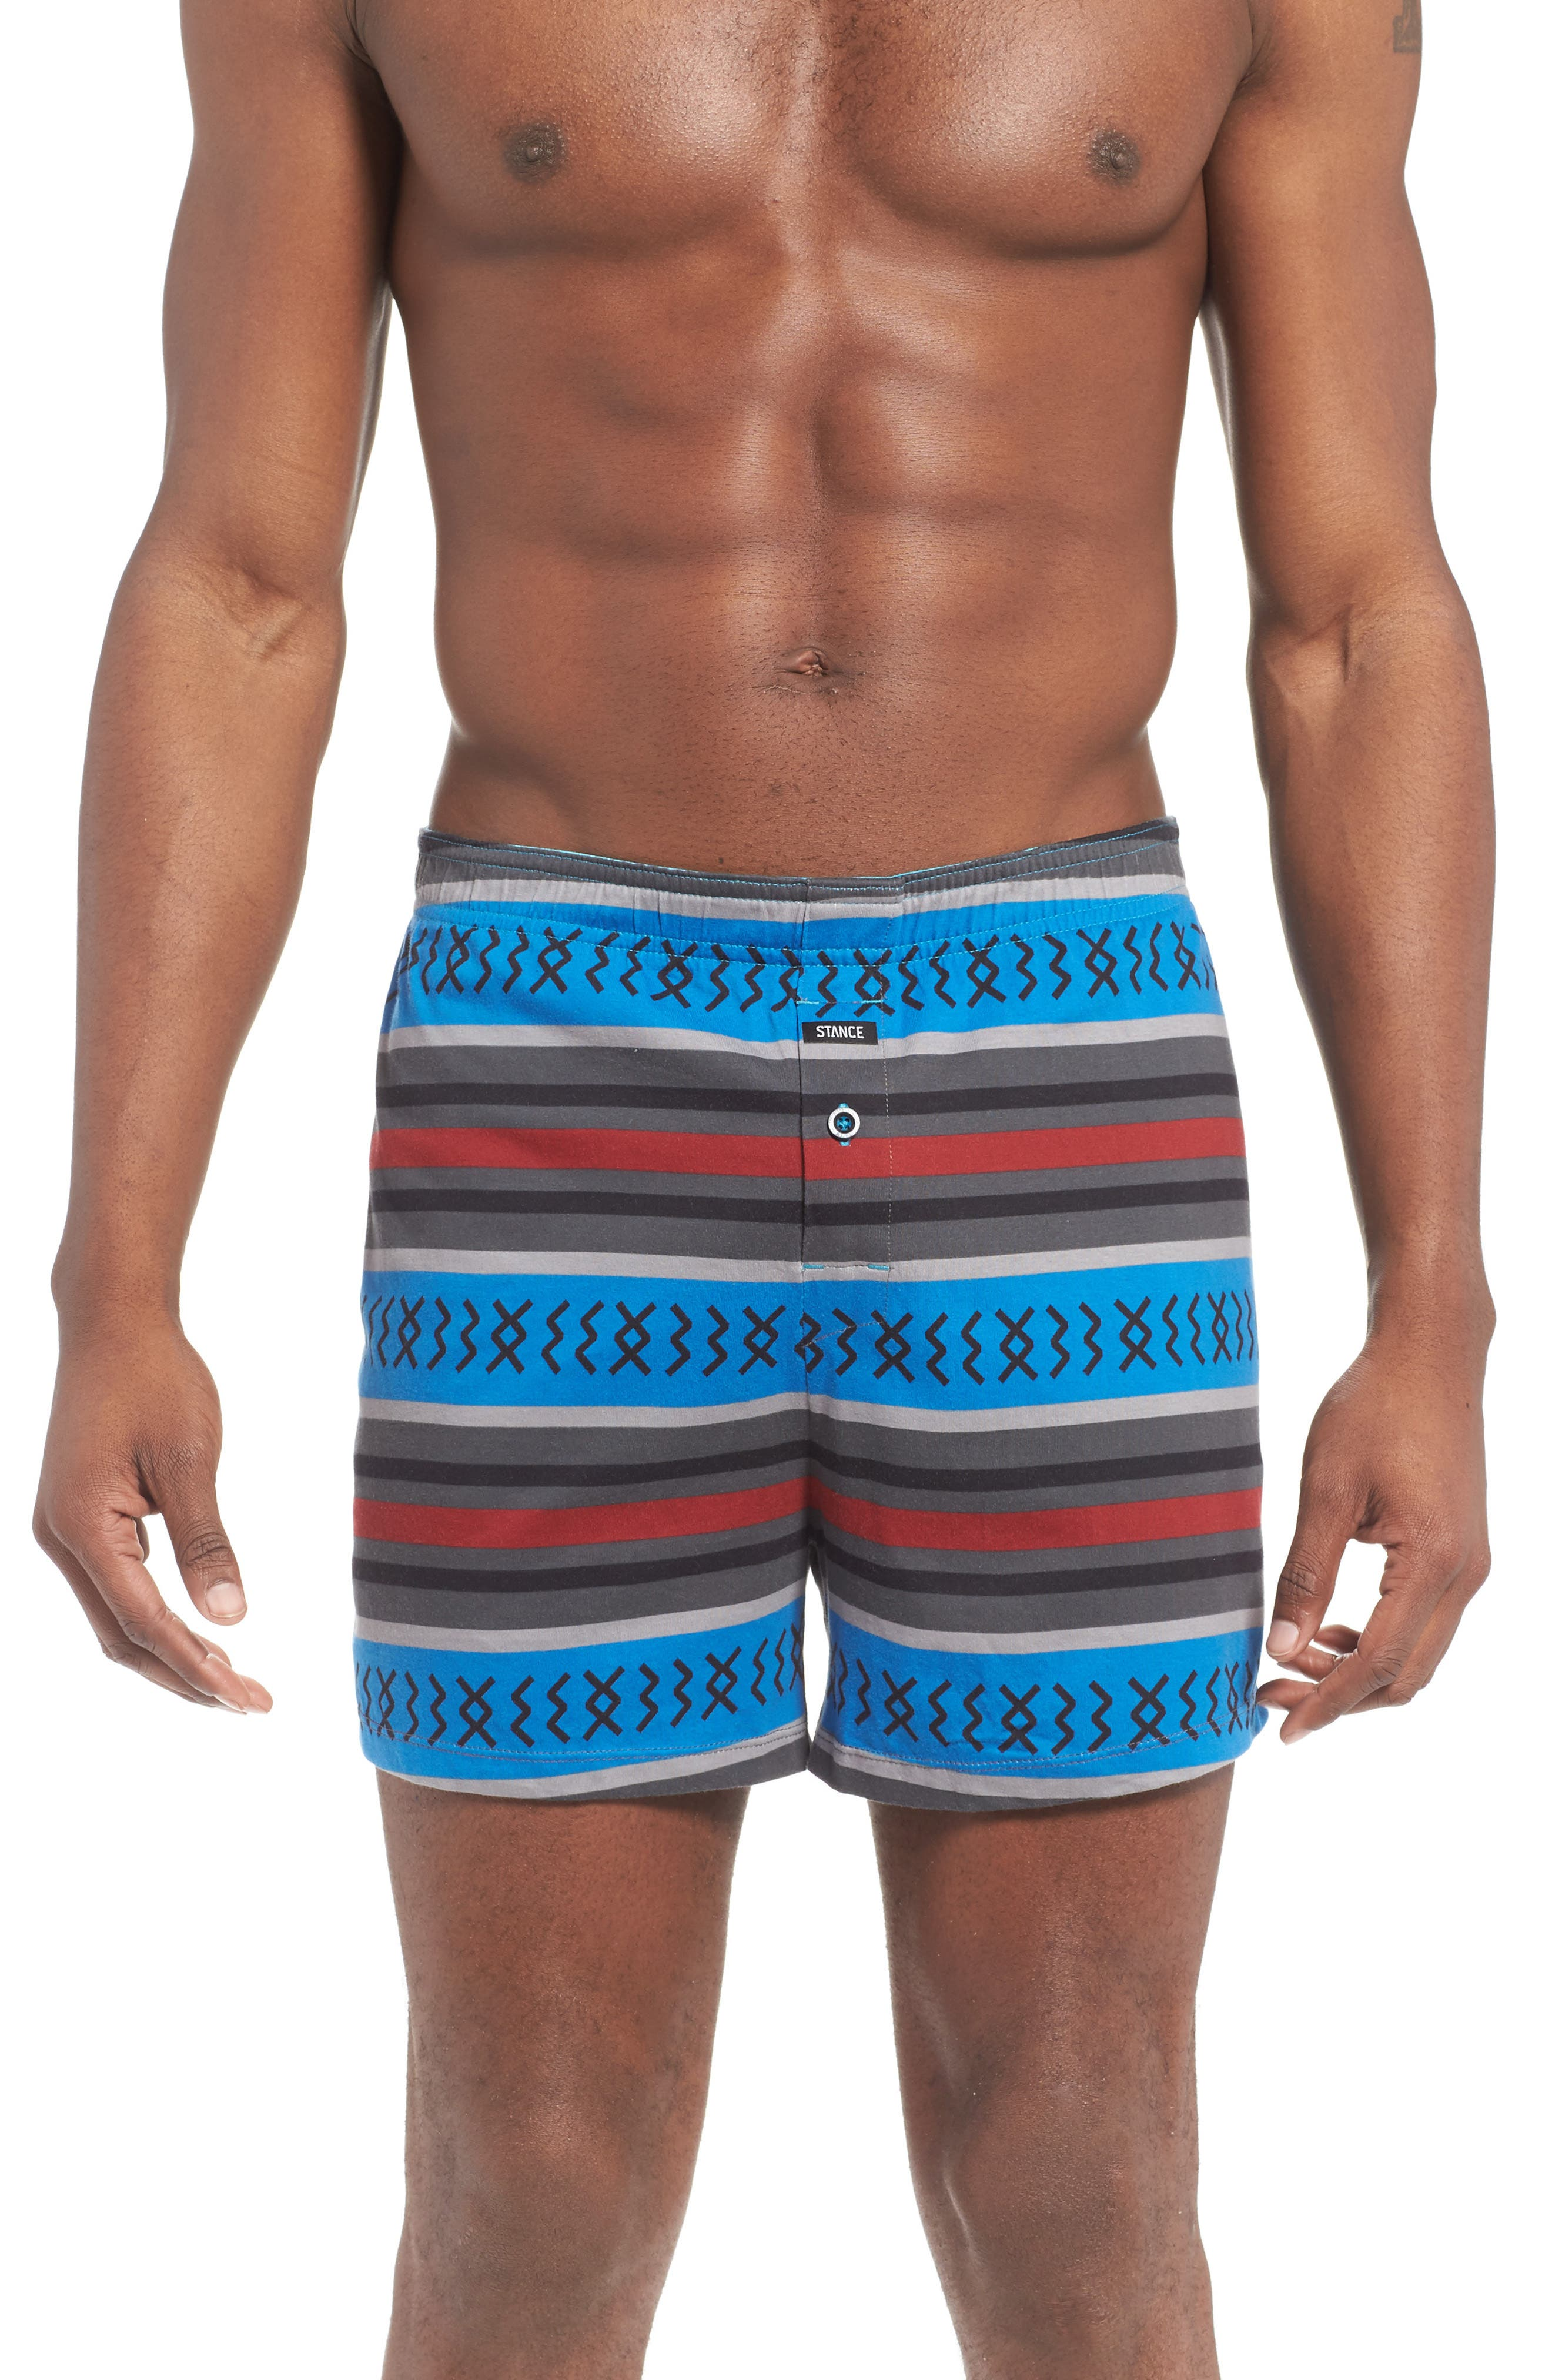 Visita Rune Relaxed Fit Boxer Briefs,                             Main thumbnail 1, color,                             030